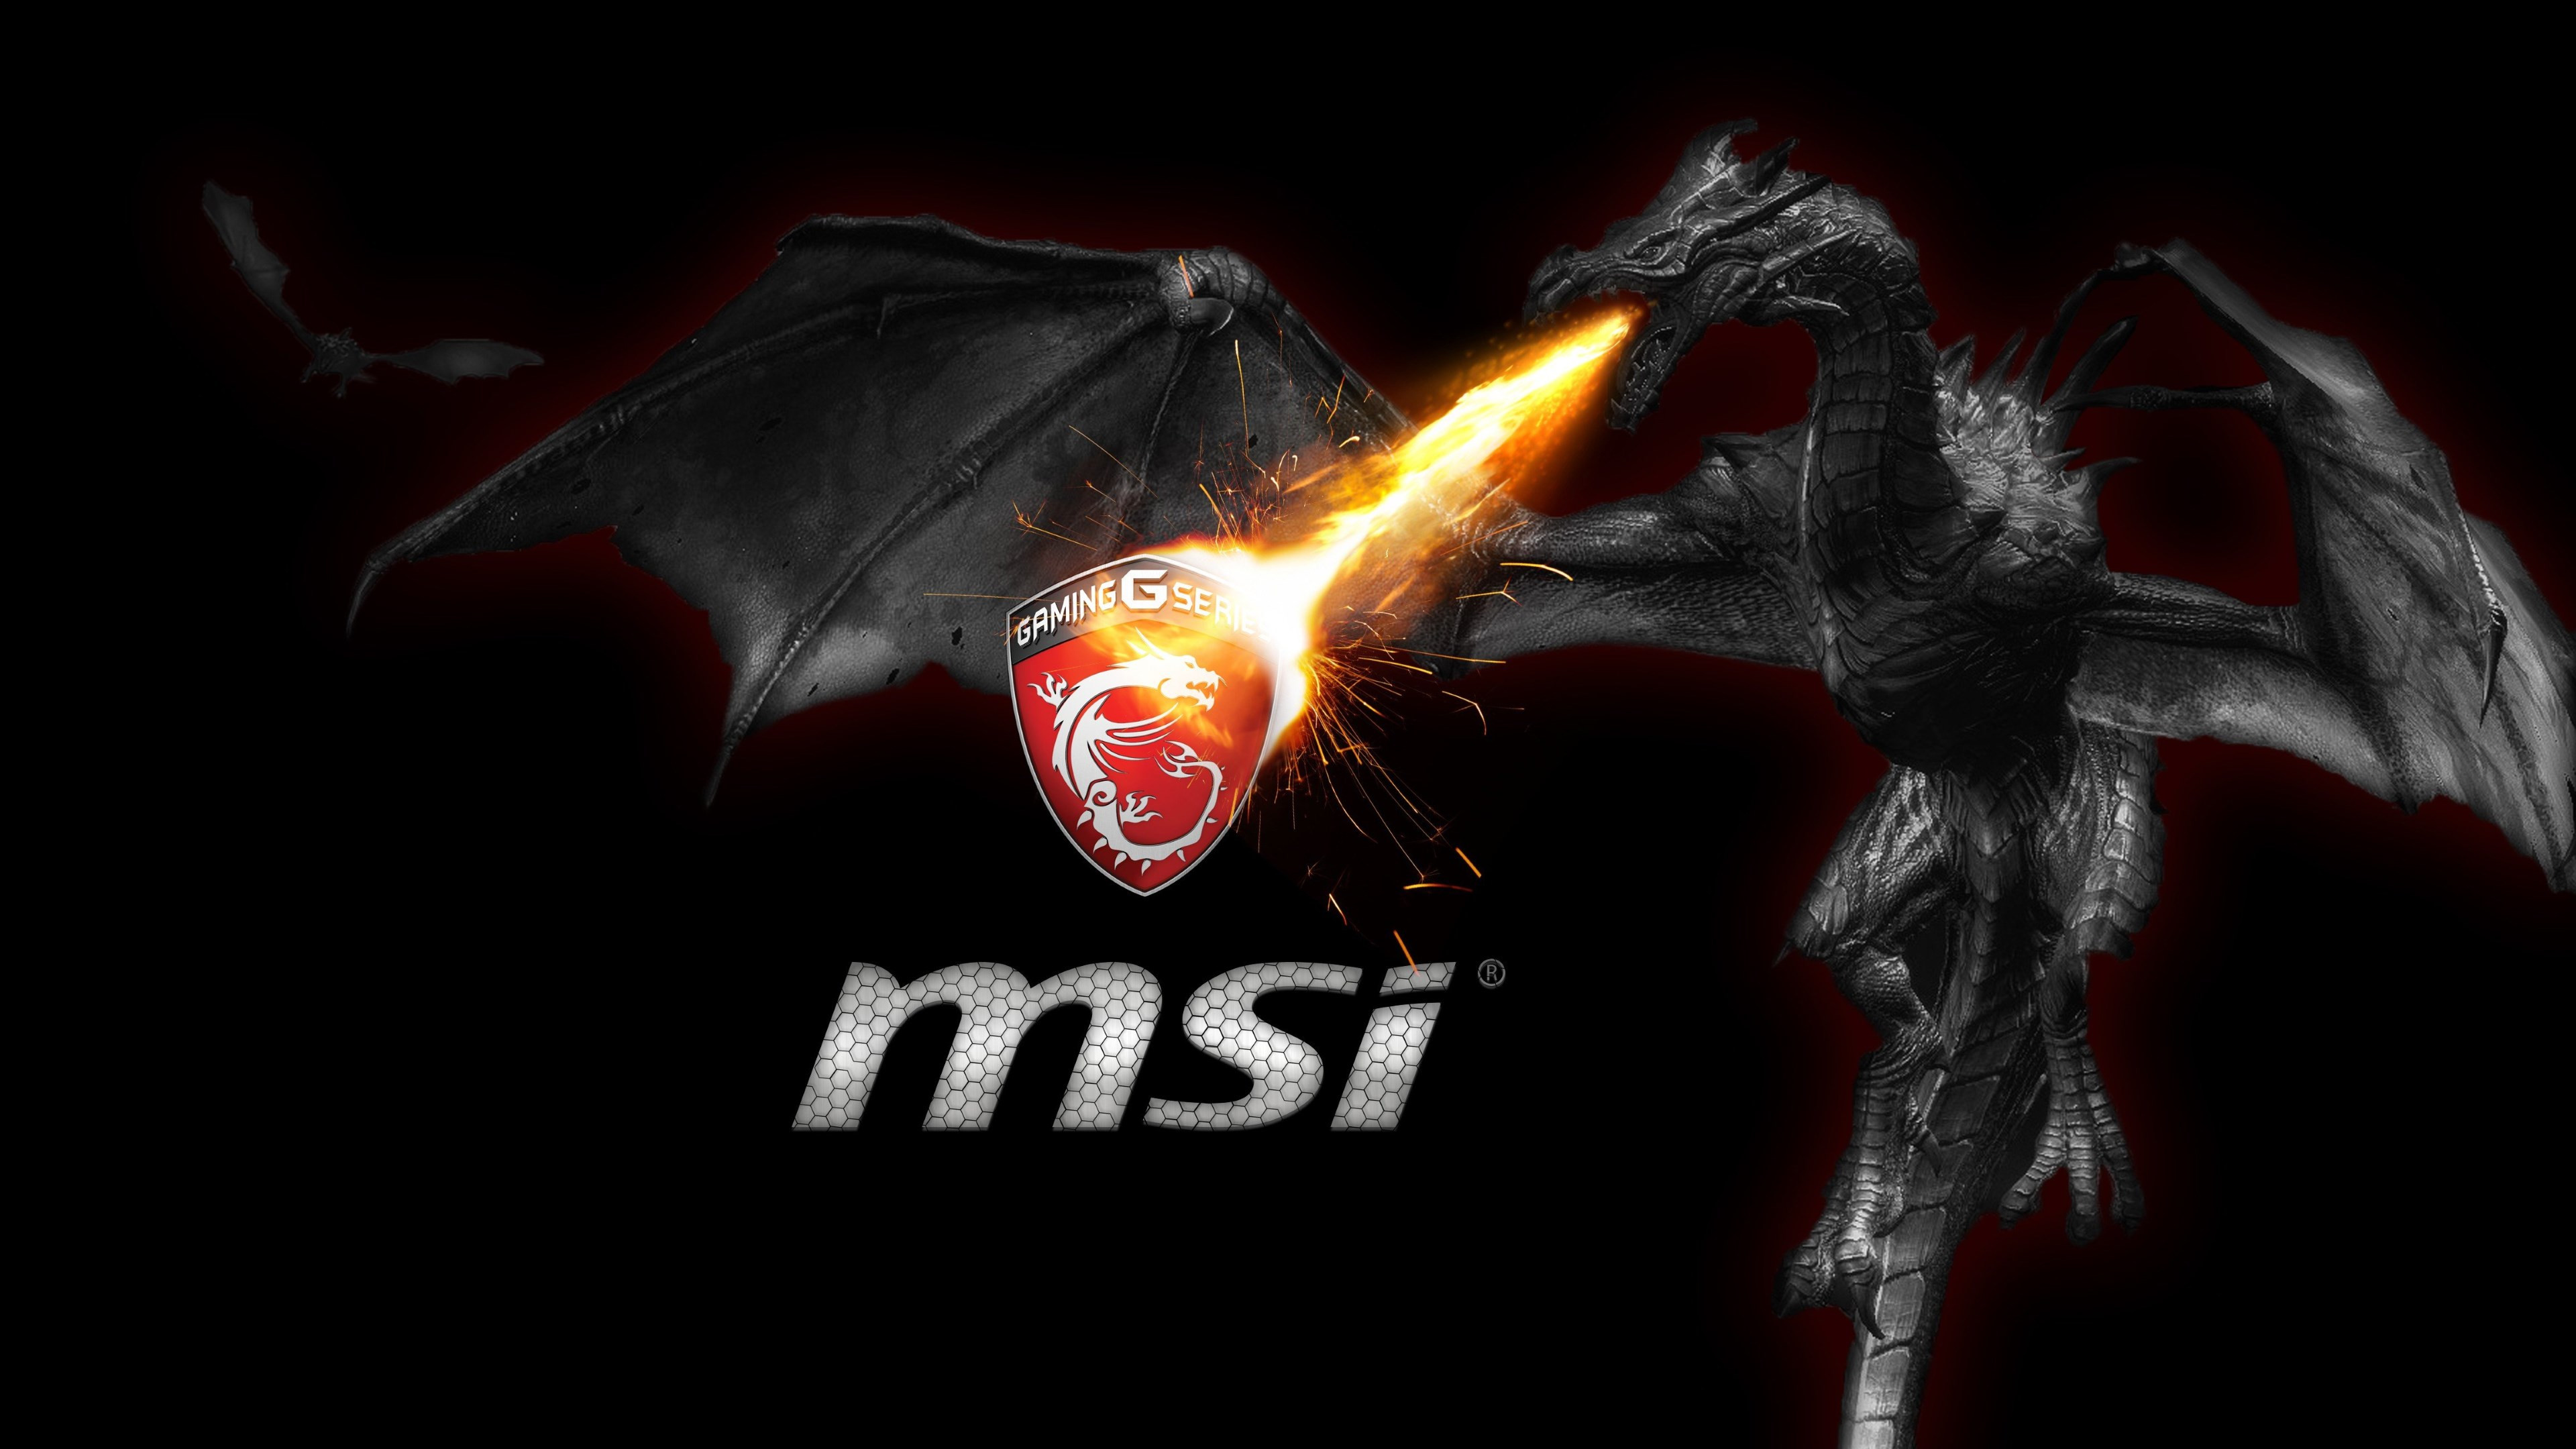 MSI G Series wallpaper 3840x2160